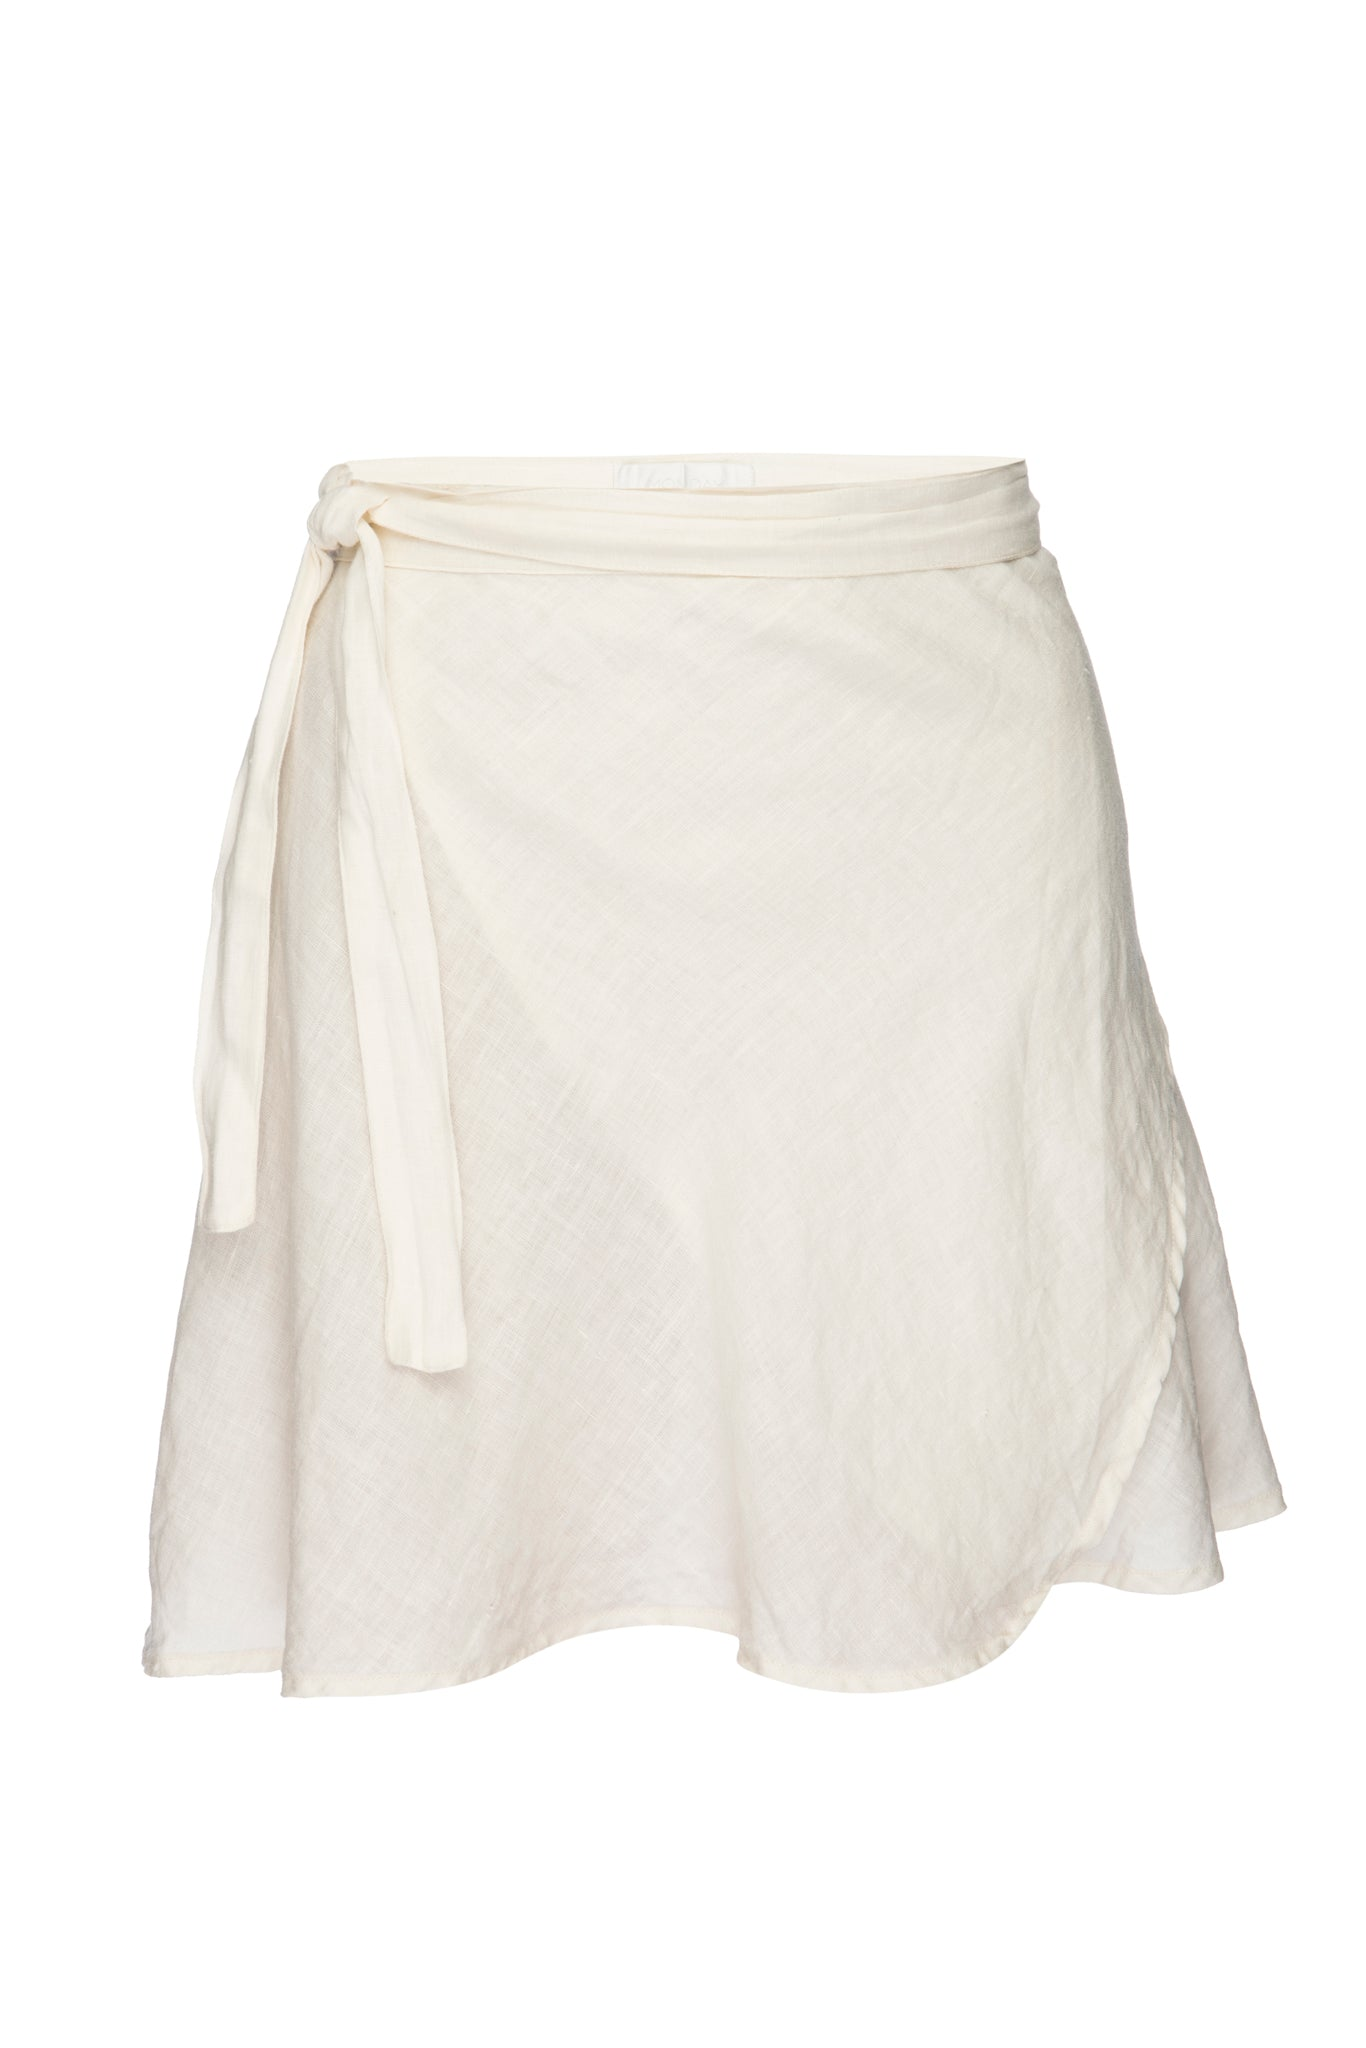 Load image into Gallery viewer, Monaco Linen Skirt - Ivory